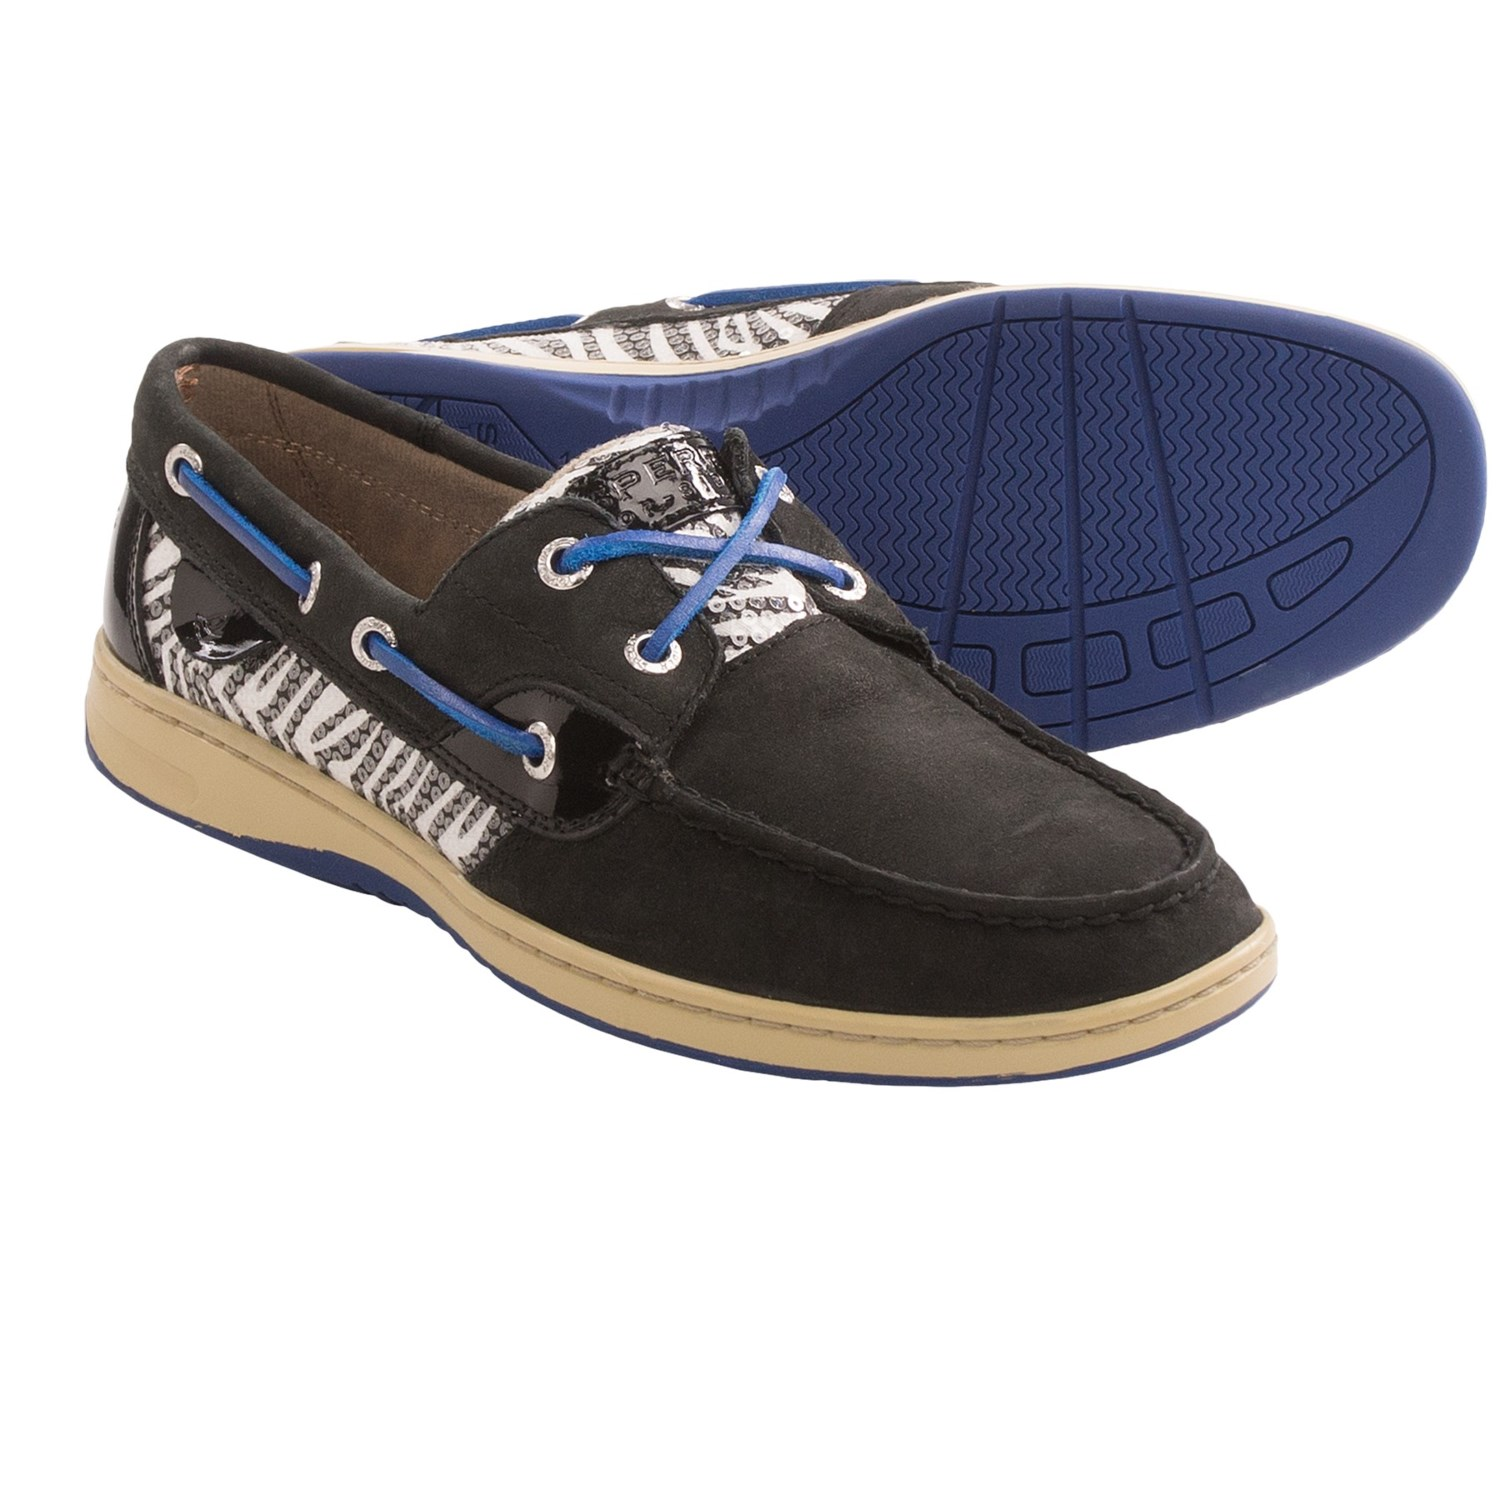 Womens Sperry Top-Sider Angelfish Boat Shoe, Black Gold, at